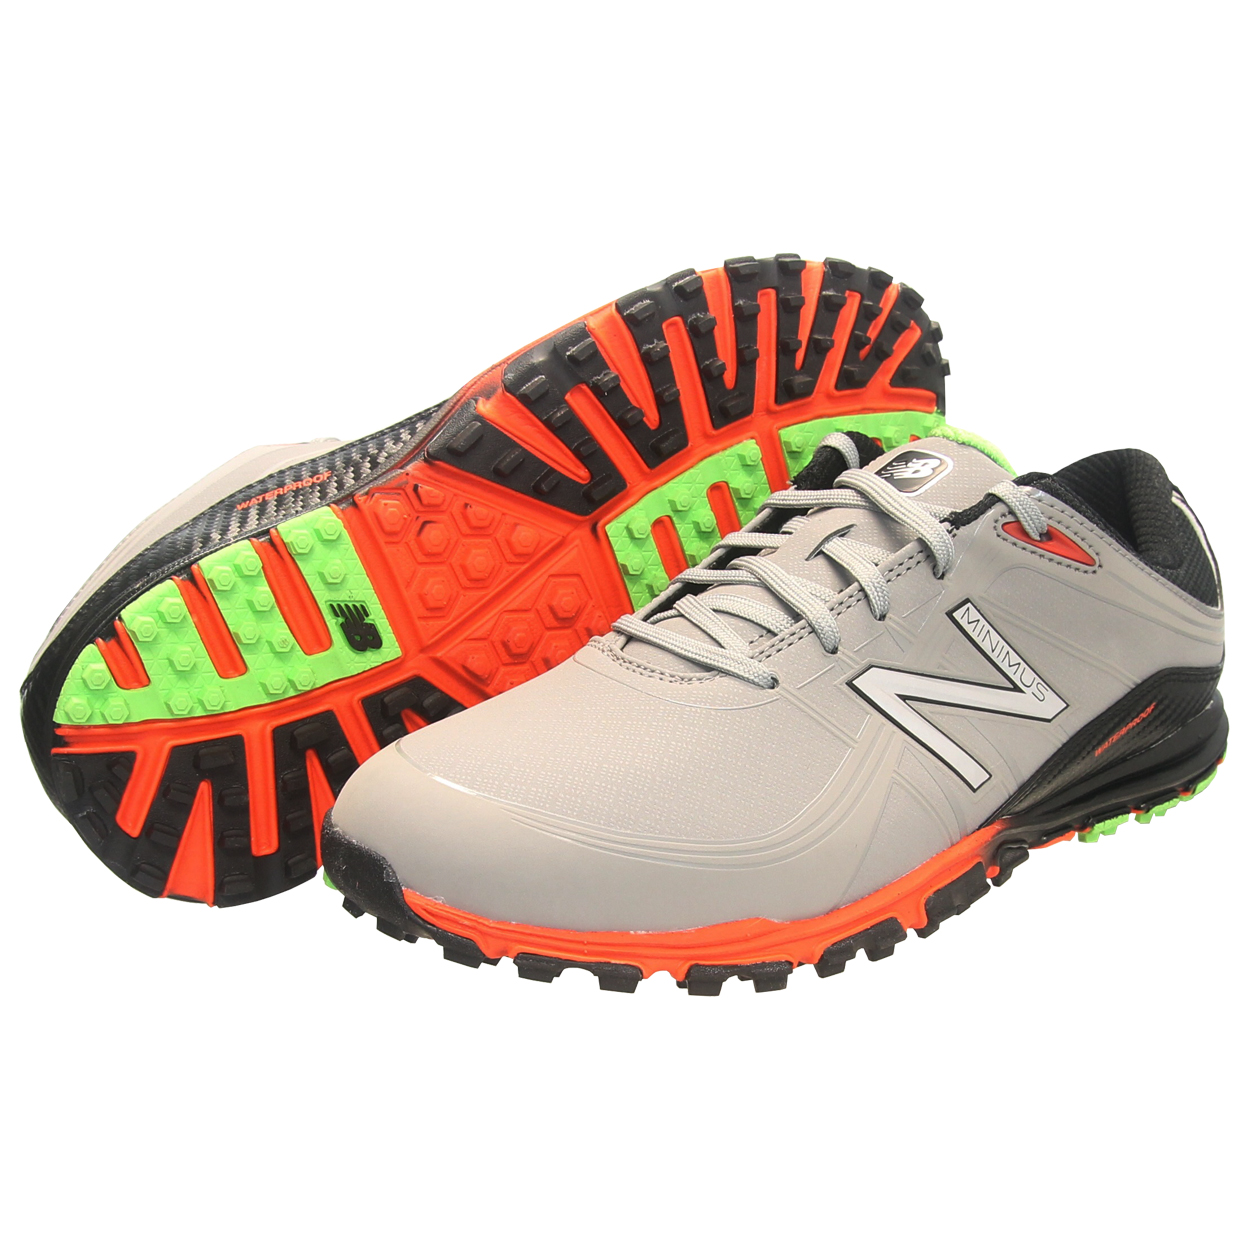 New Balance Men's Minimus Spikeless Golf Shoe